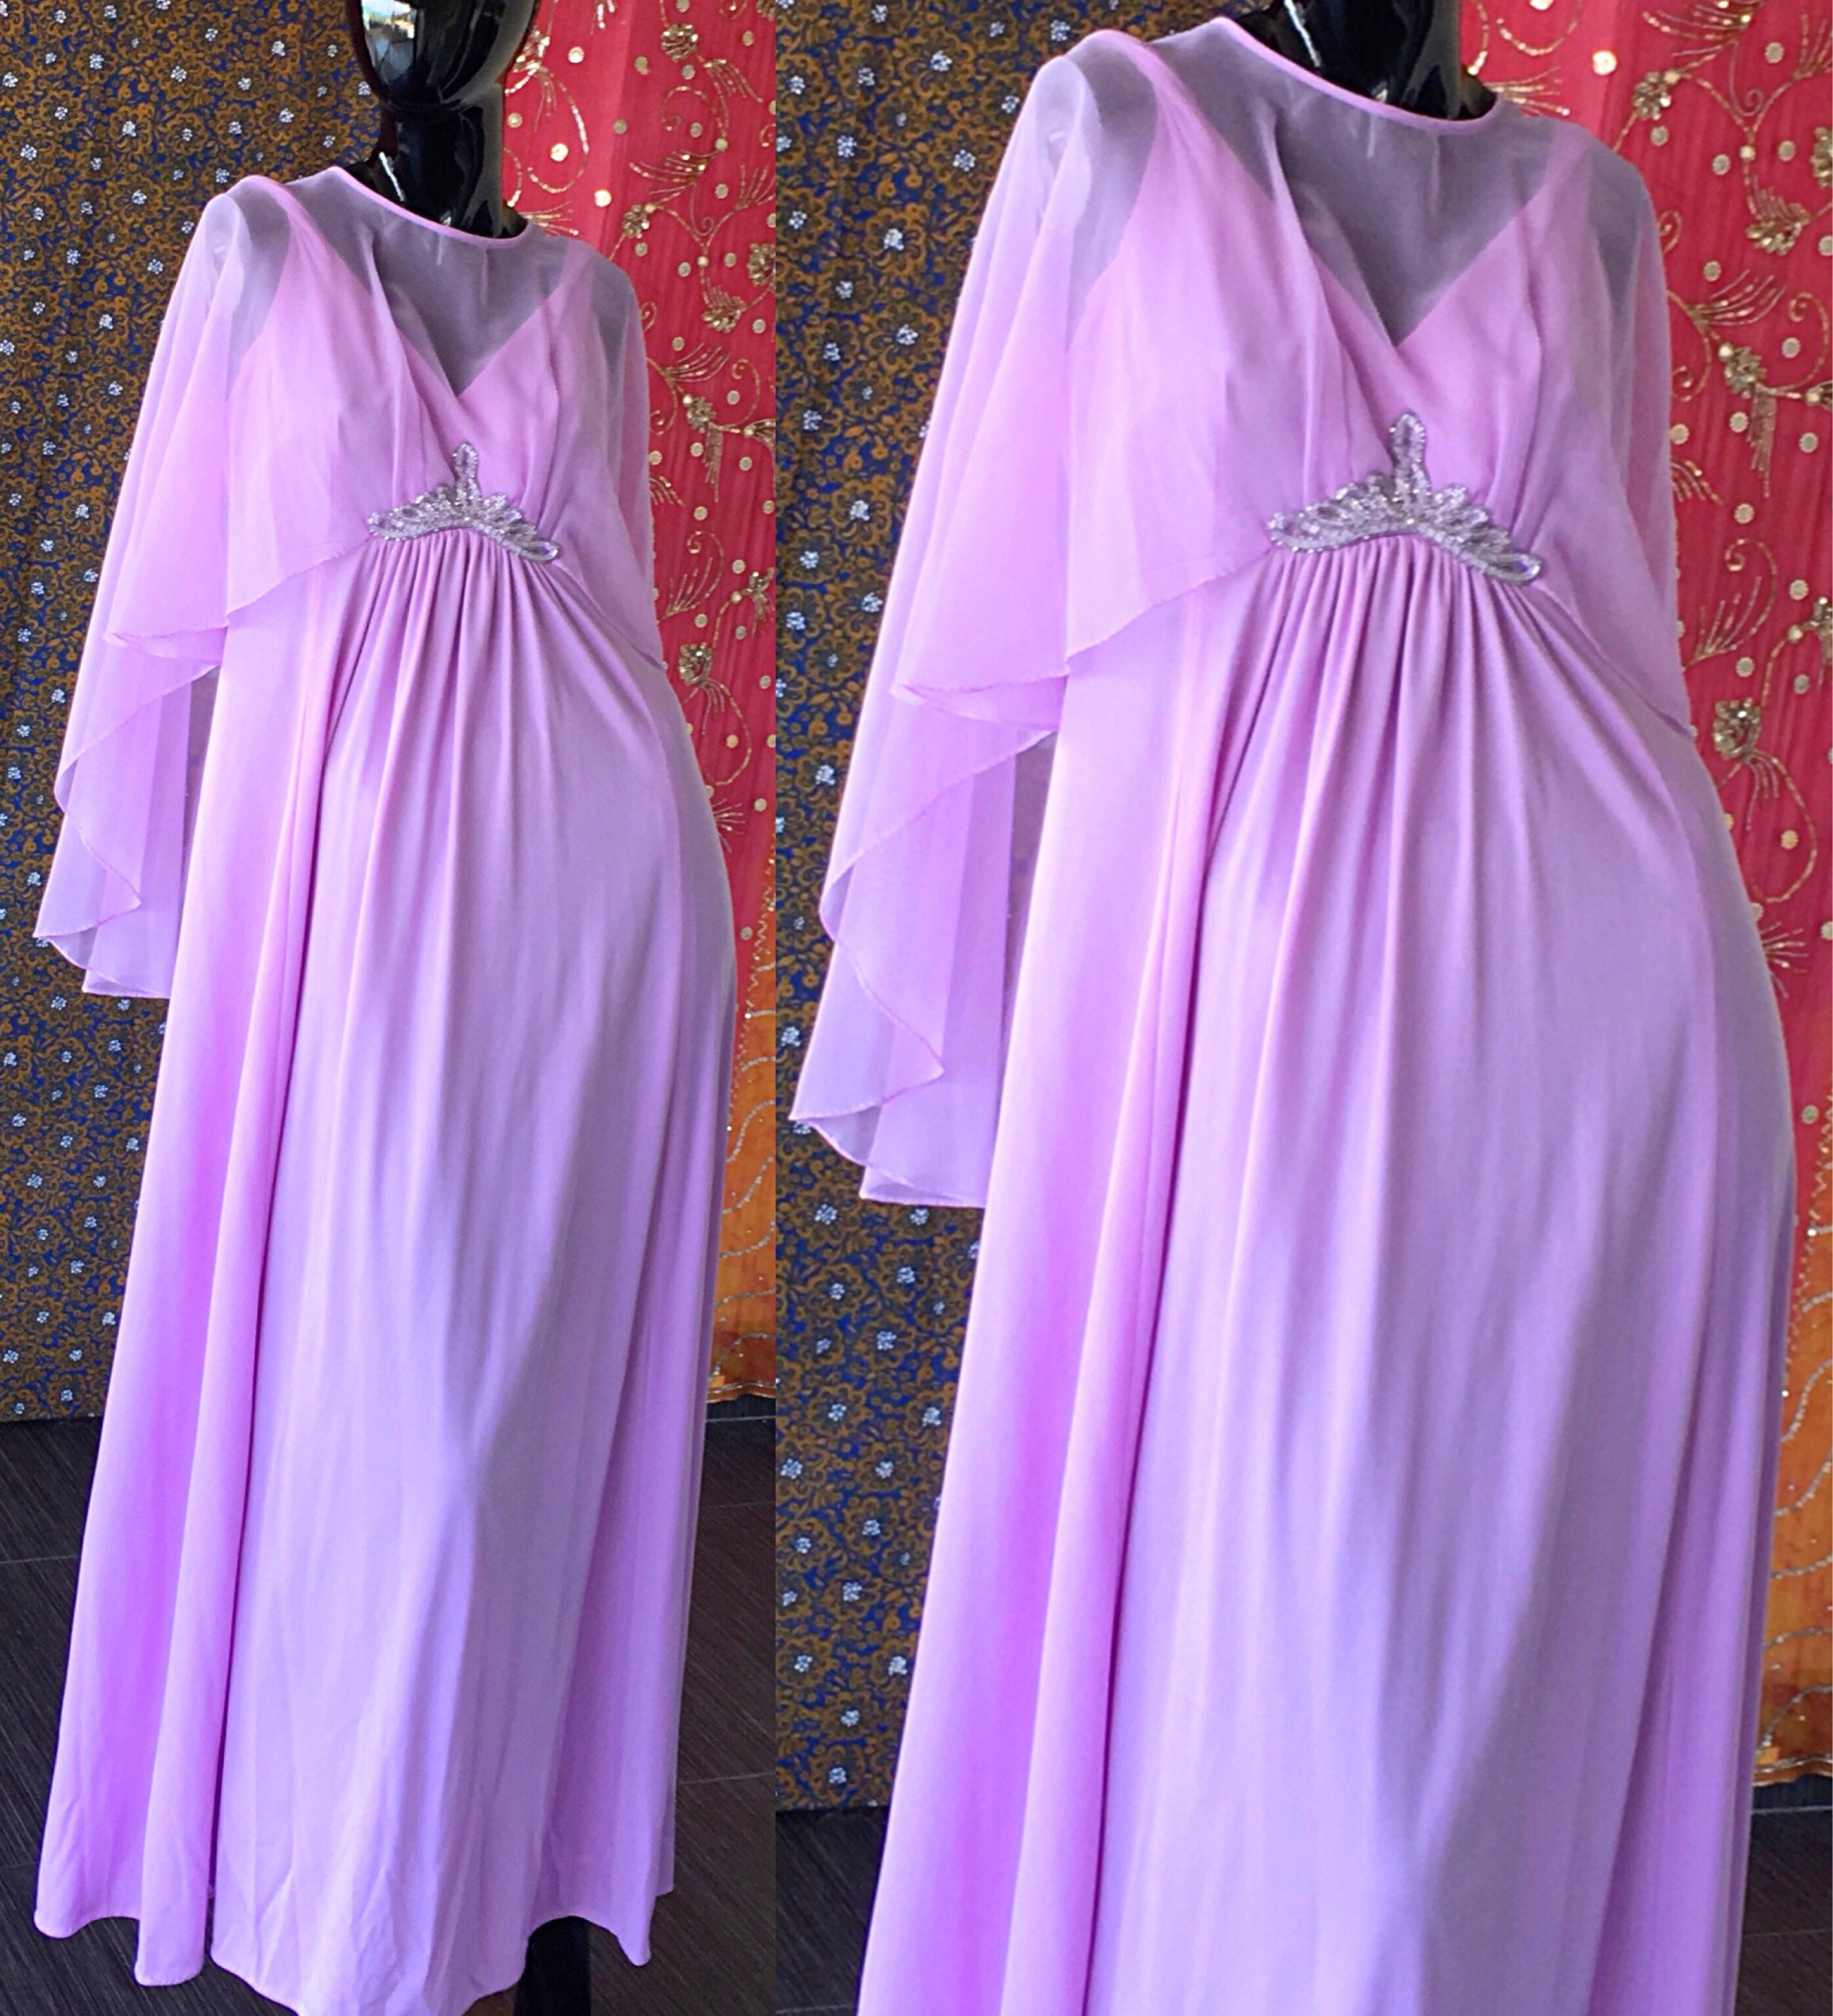 Sequin Disco Dress 70s Grecian Party Floating Dress